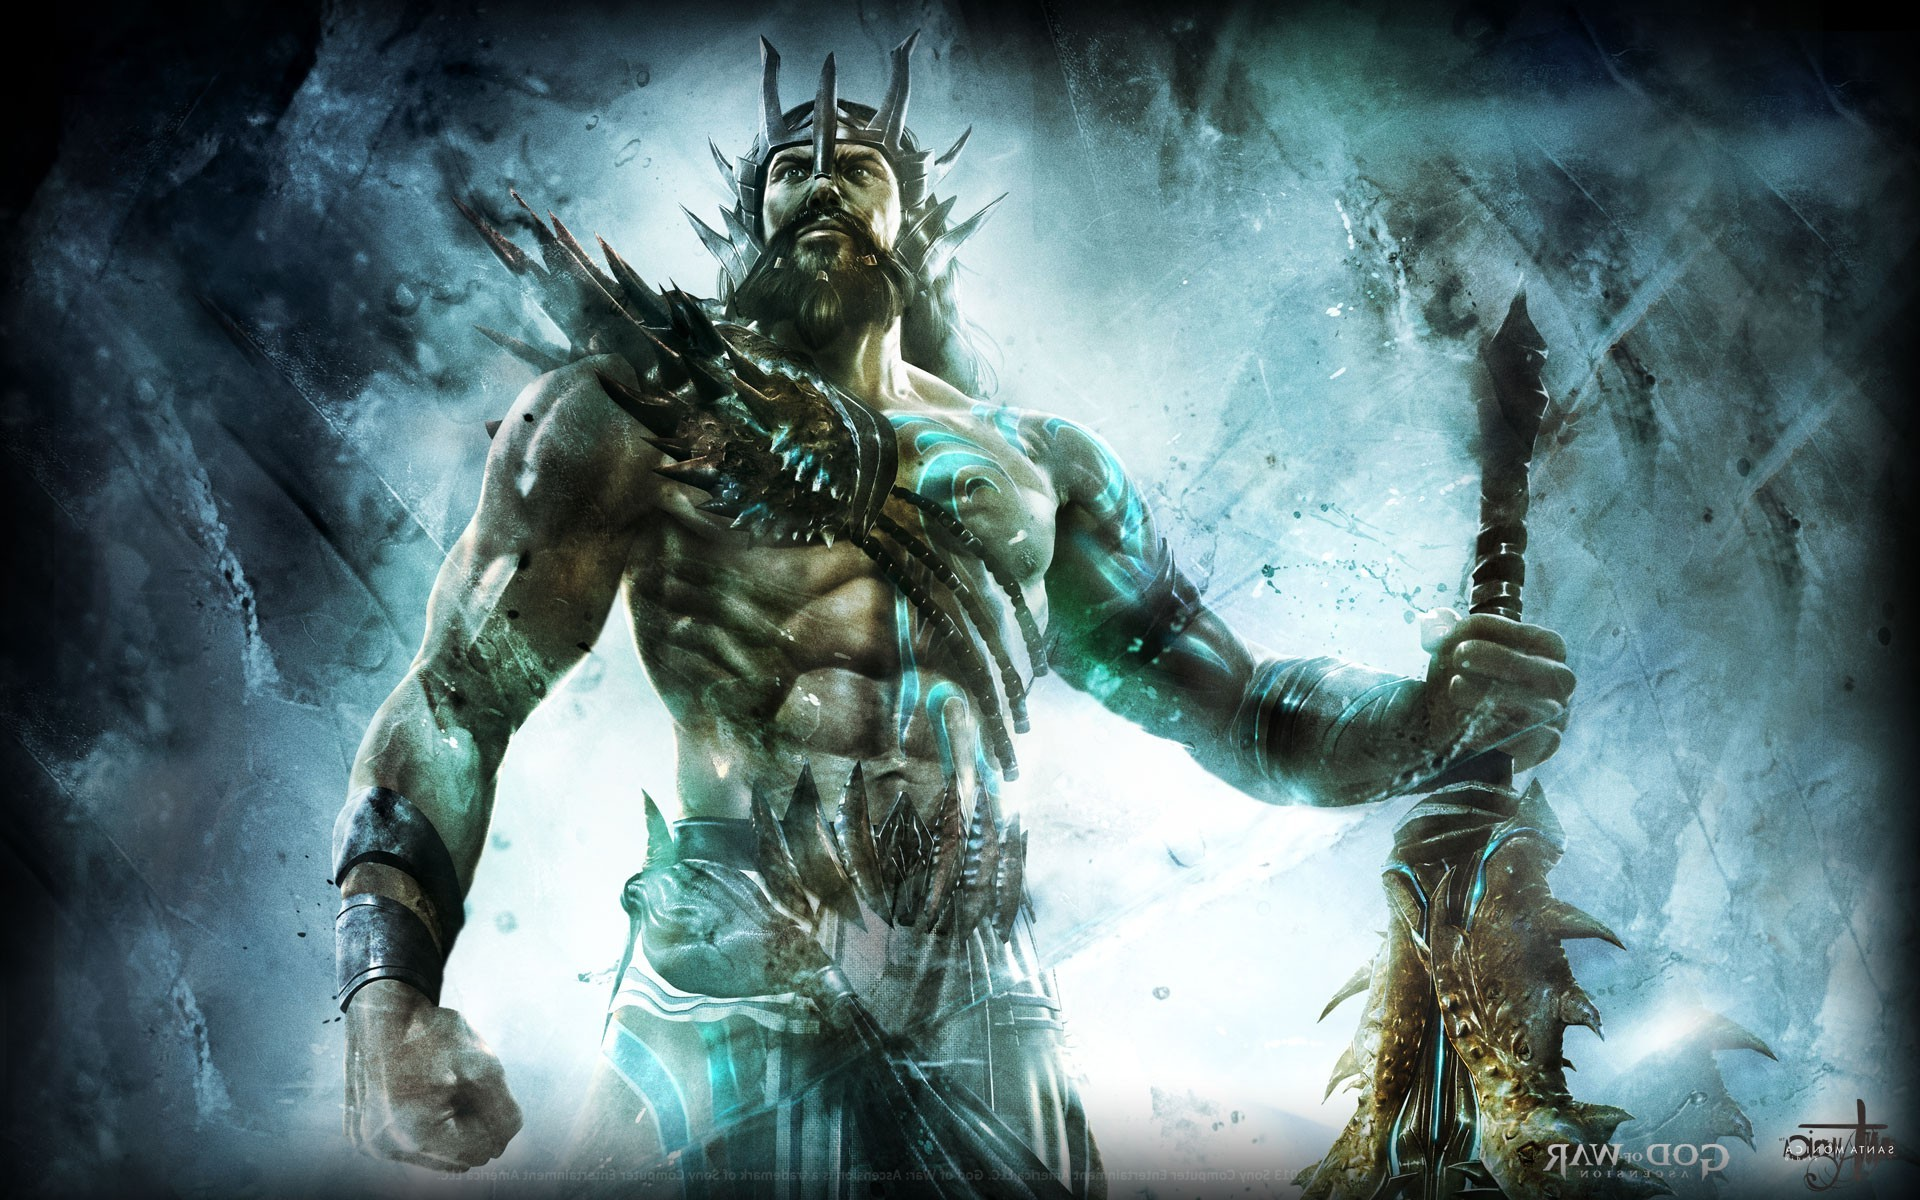 1920x1200 Nordic Mythology Wallpaper Android Apps on Google Play